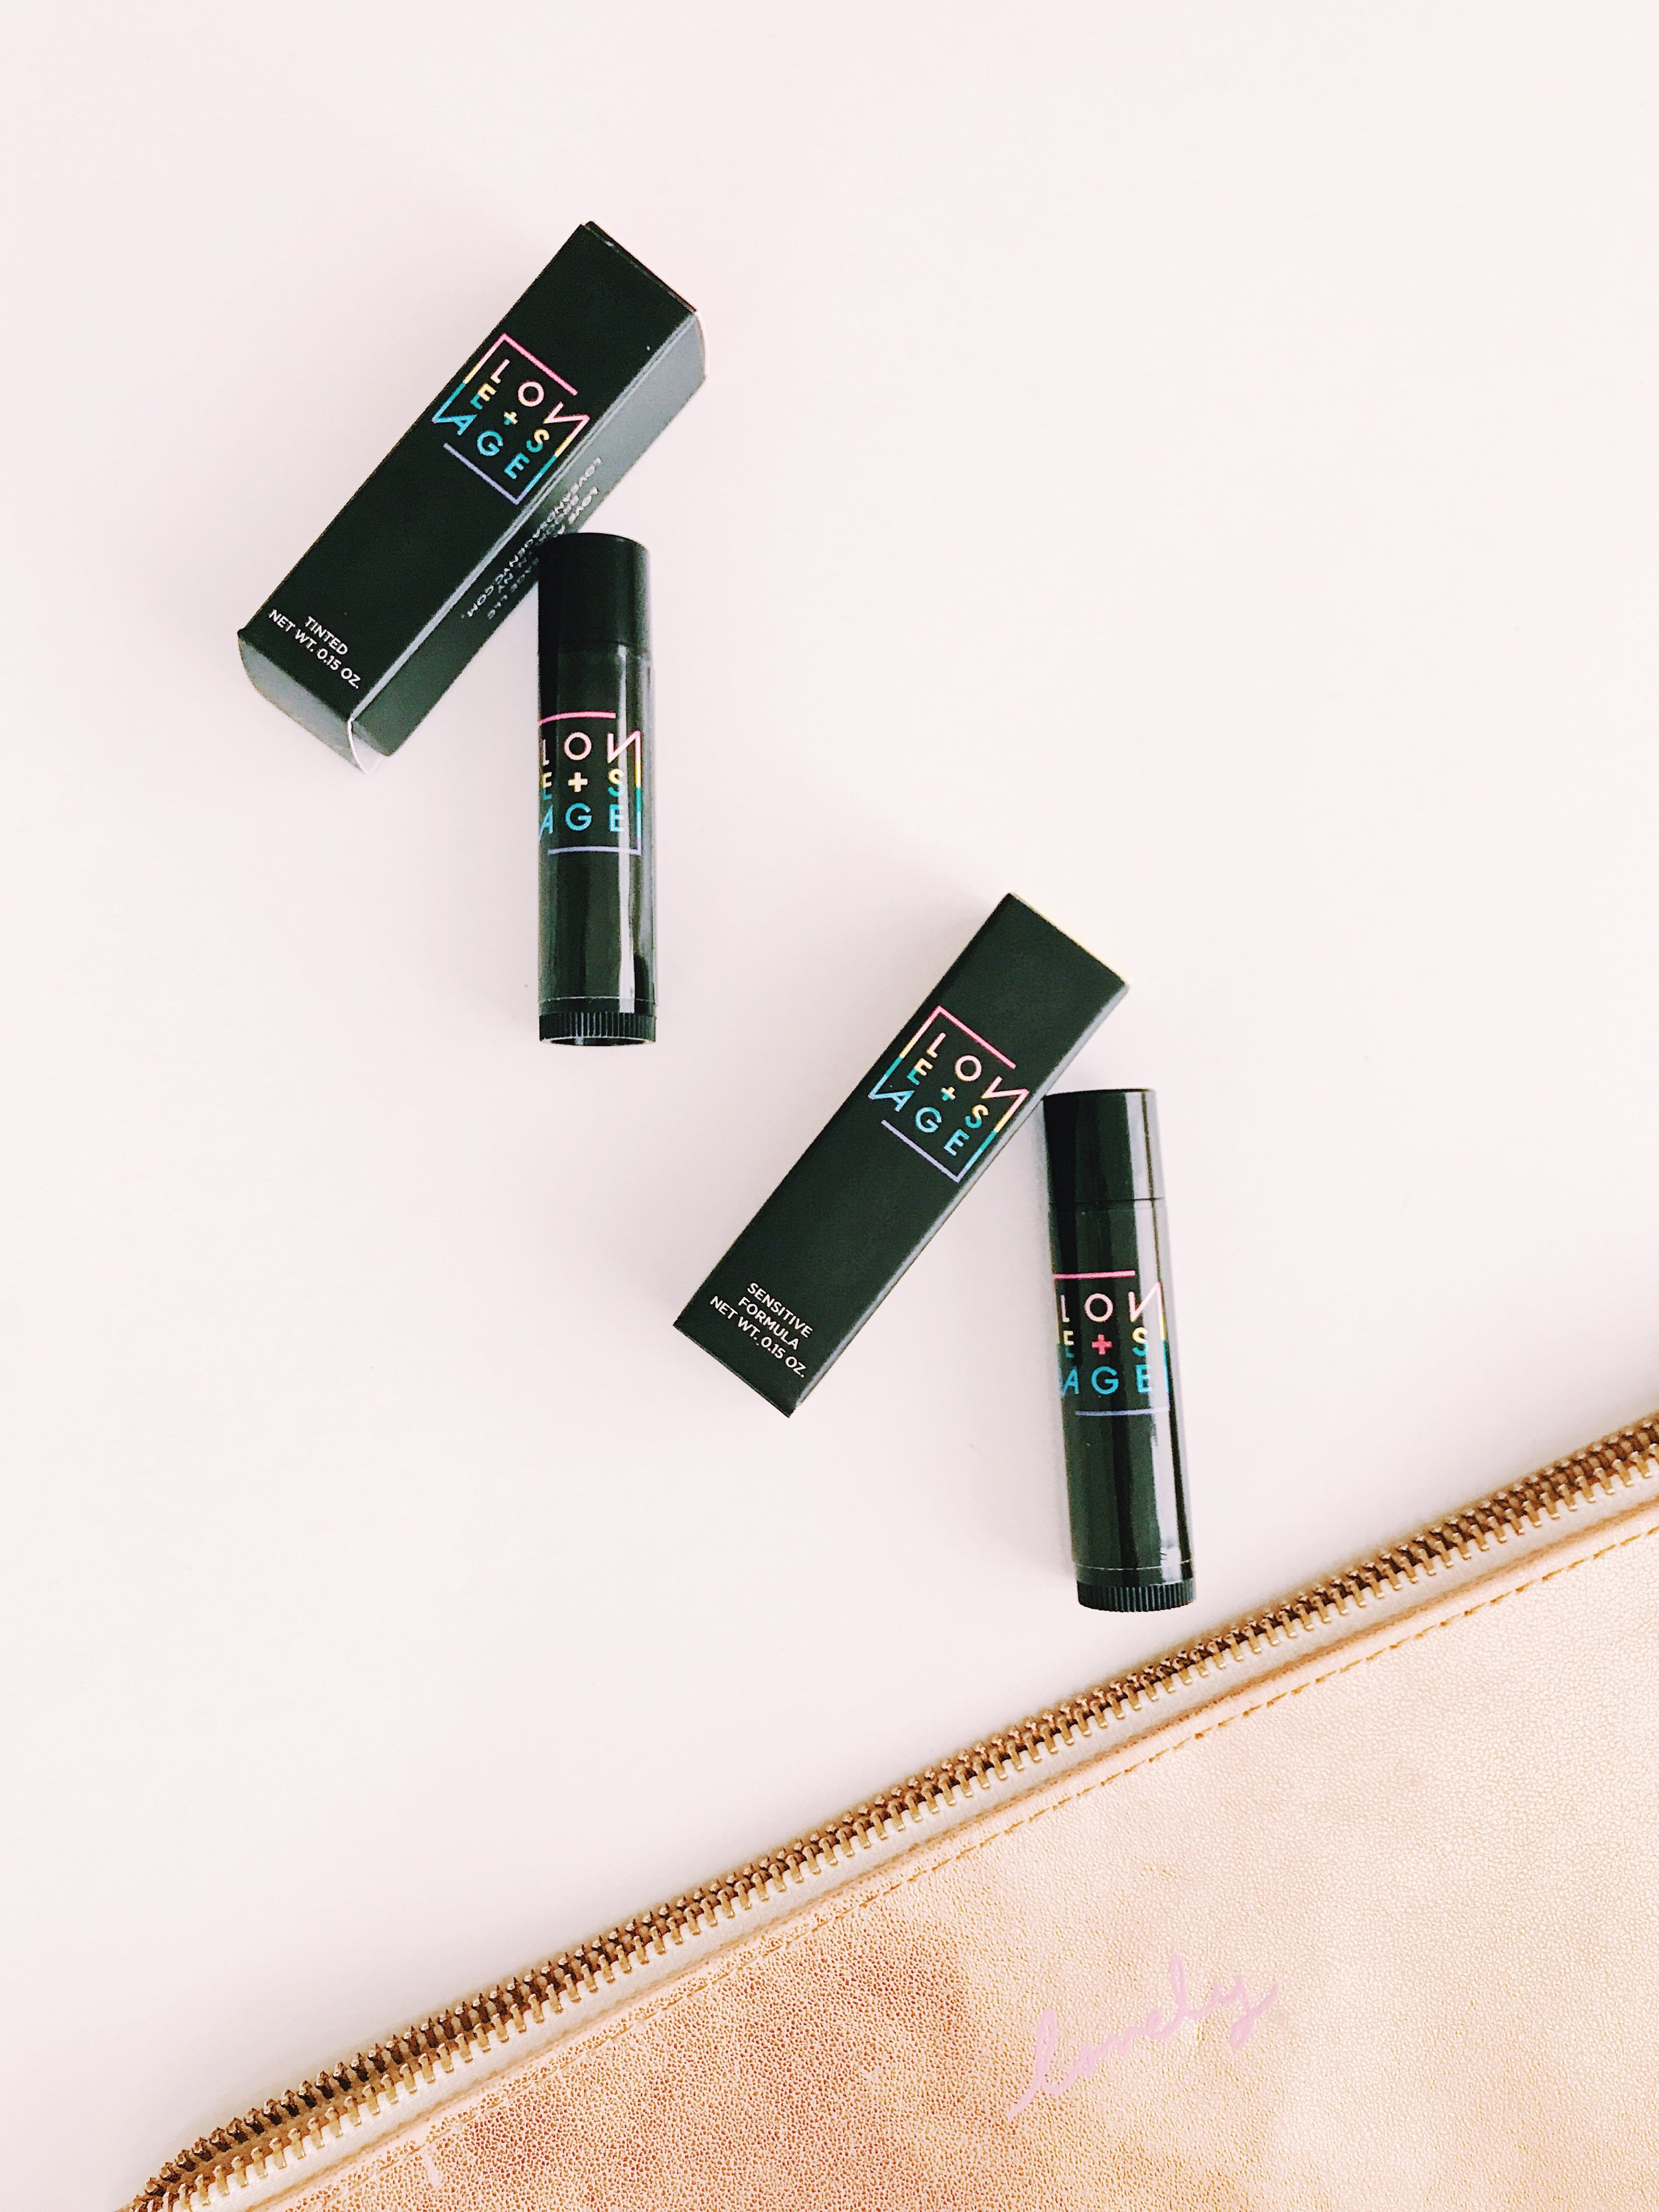 Moisturize  - I only use natural lip balms because most of the cheap ones have petroleum jelly and really just dry out your lips in the long run. I've been obsessed with these Love + Sage lip balms for summer because they smell delicious, use natural moisturizers like avocado oil, shea butter, coconut oil, etc. and they have a touch of SPF! My favorite one so far: Well Red (I'm a sucker for puns and sheer lip color)!